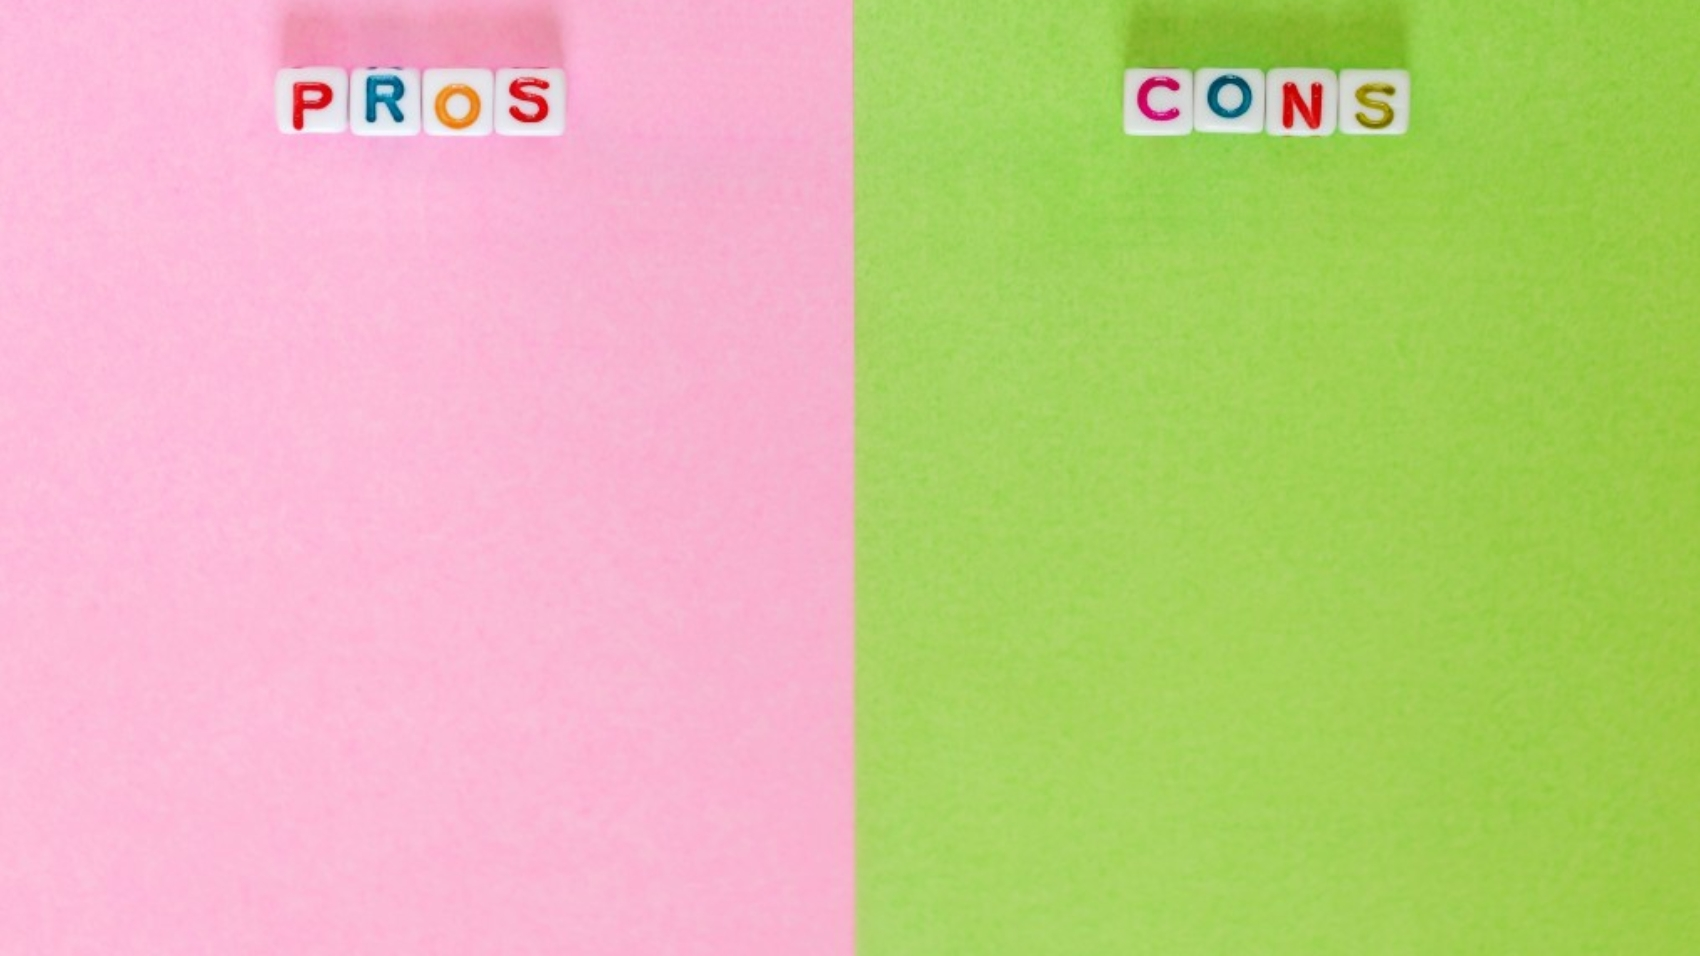 Colorful image of pros and cons of outsourcing